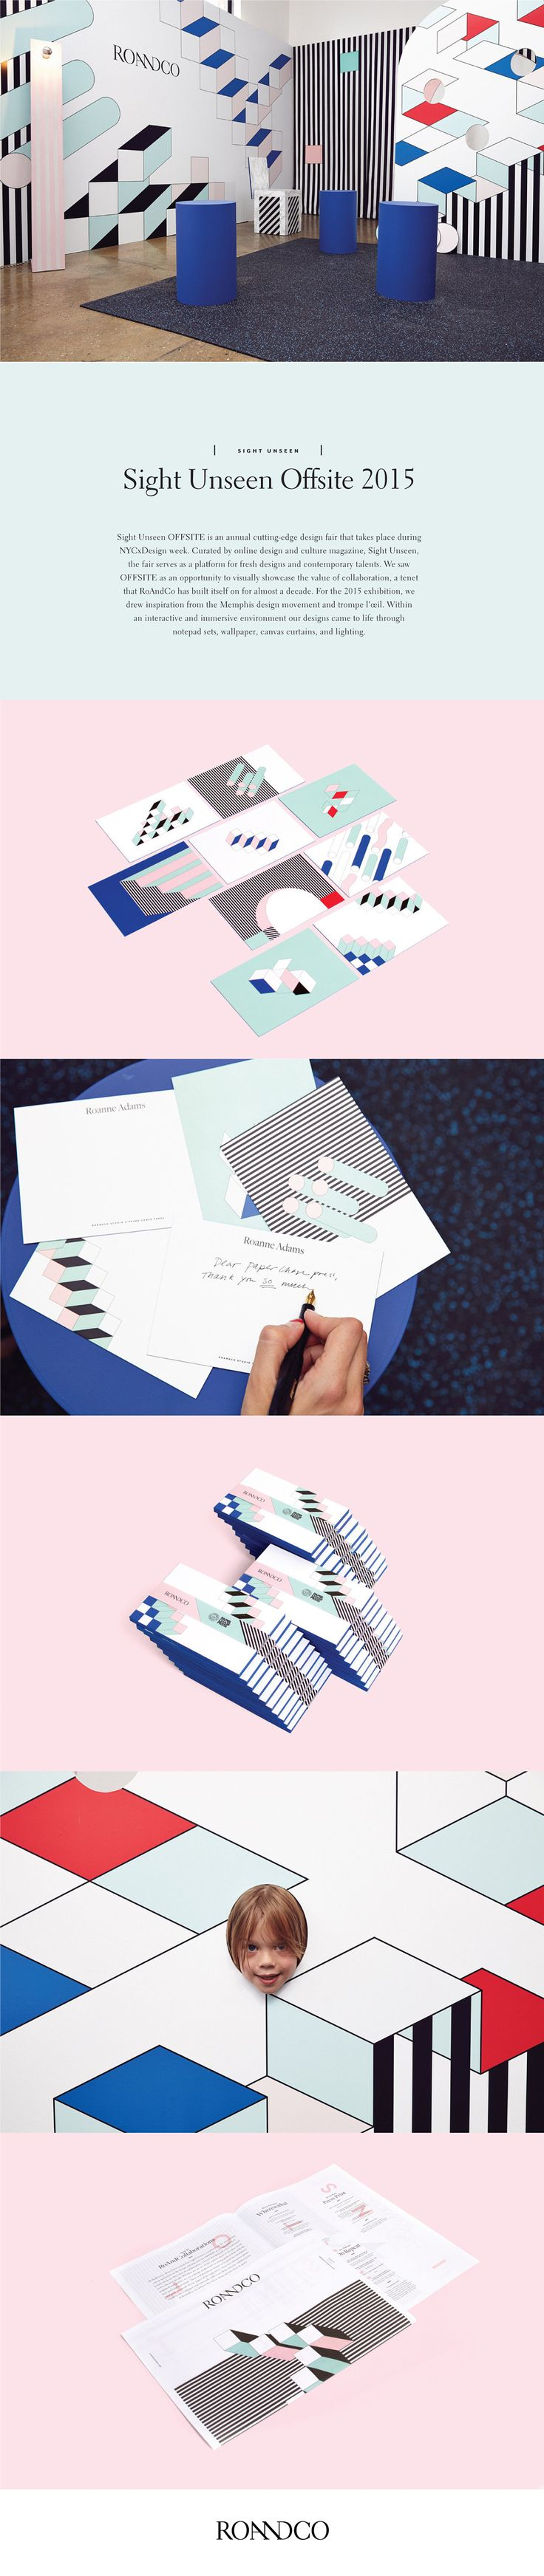 Sight Unseen Offsite 2015, by RoAndCo Studio